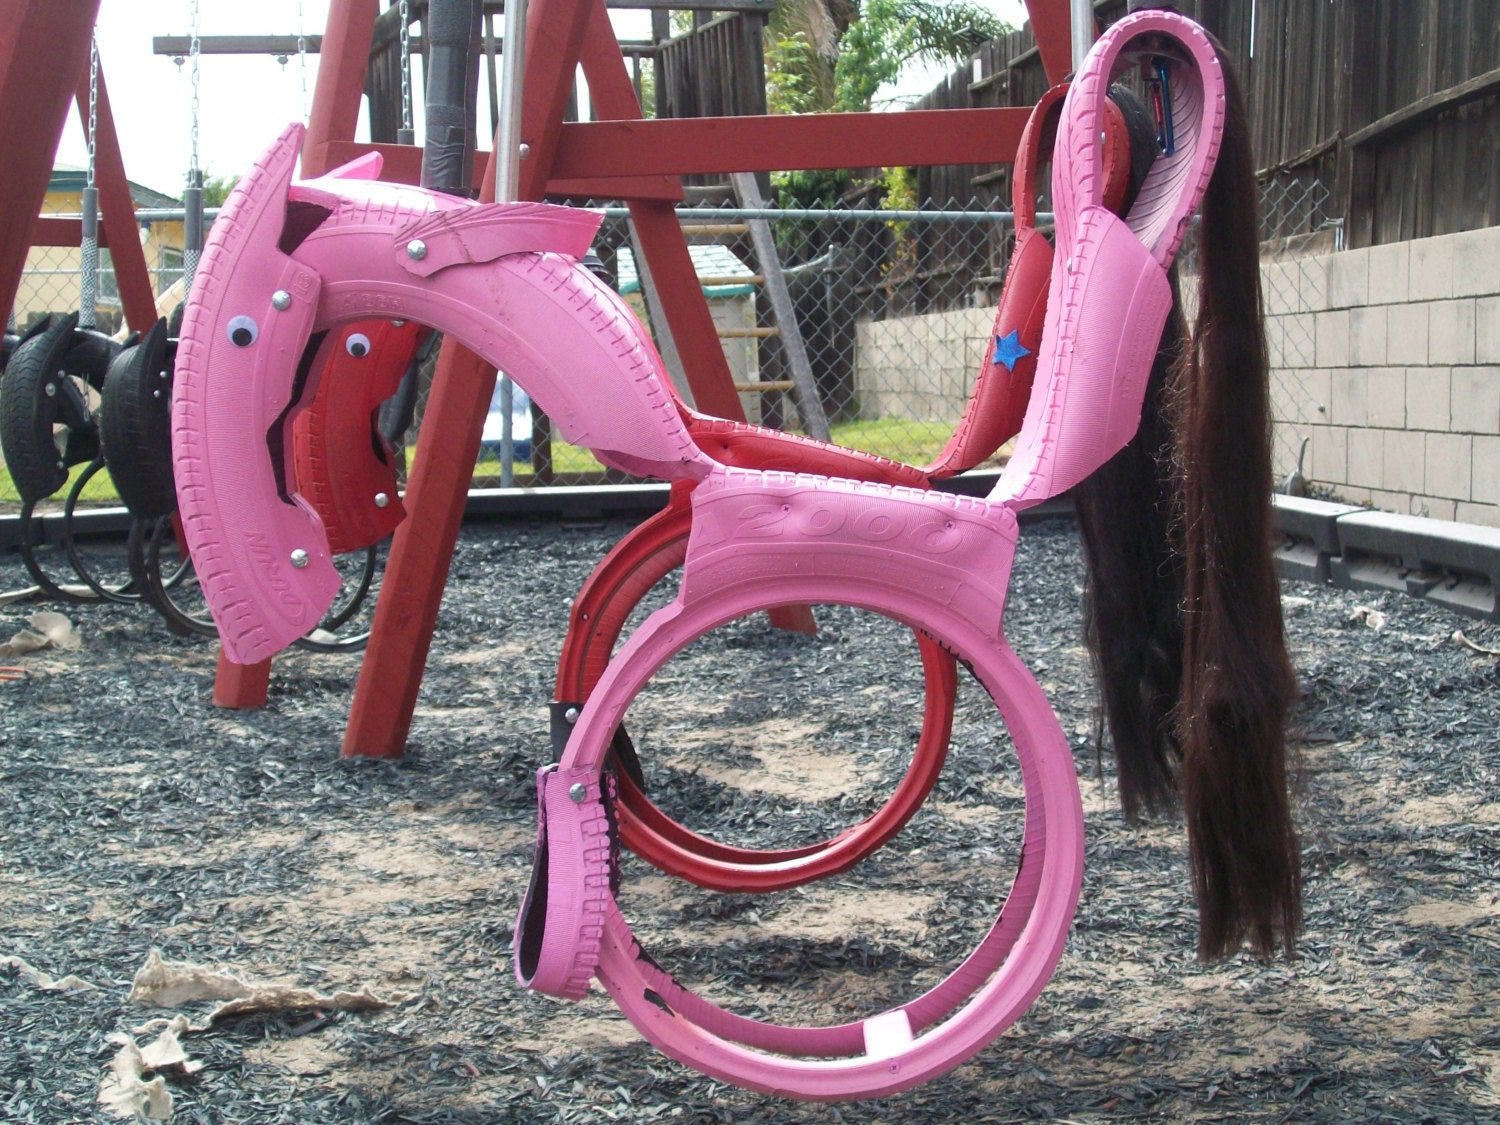 Eco-Friendly Recycled Tire Horse Swings - (99 dollars) - Handcrafted, Safe, Strong, Kids, Family, Gift, Multiple Colors Available - TireUpCycles